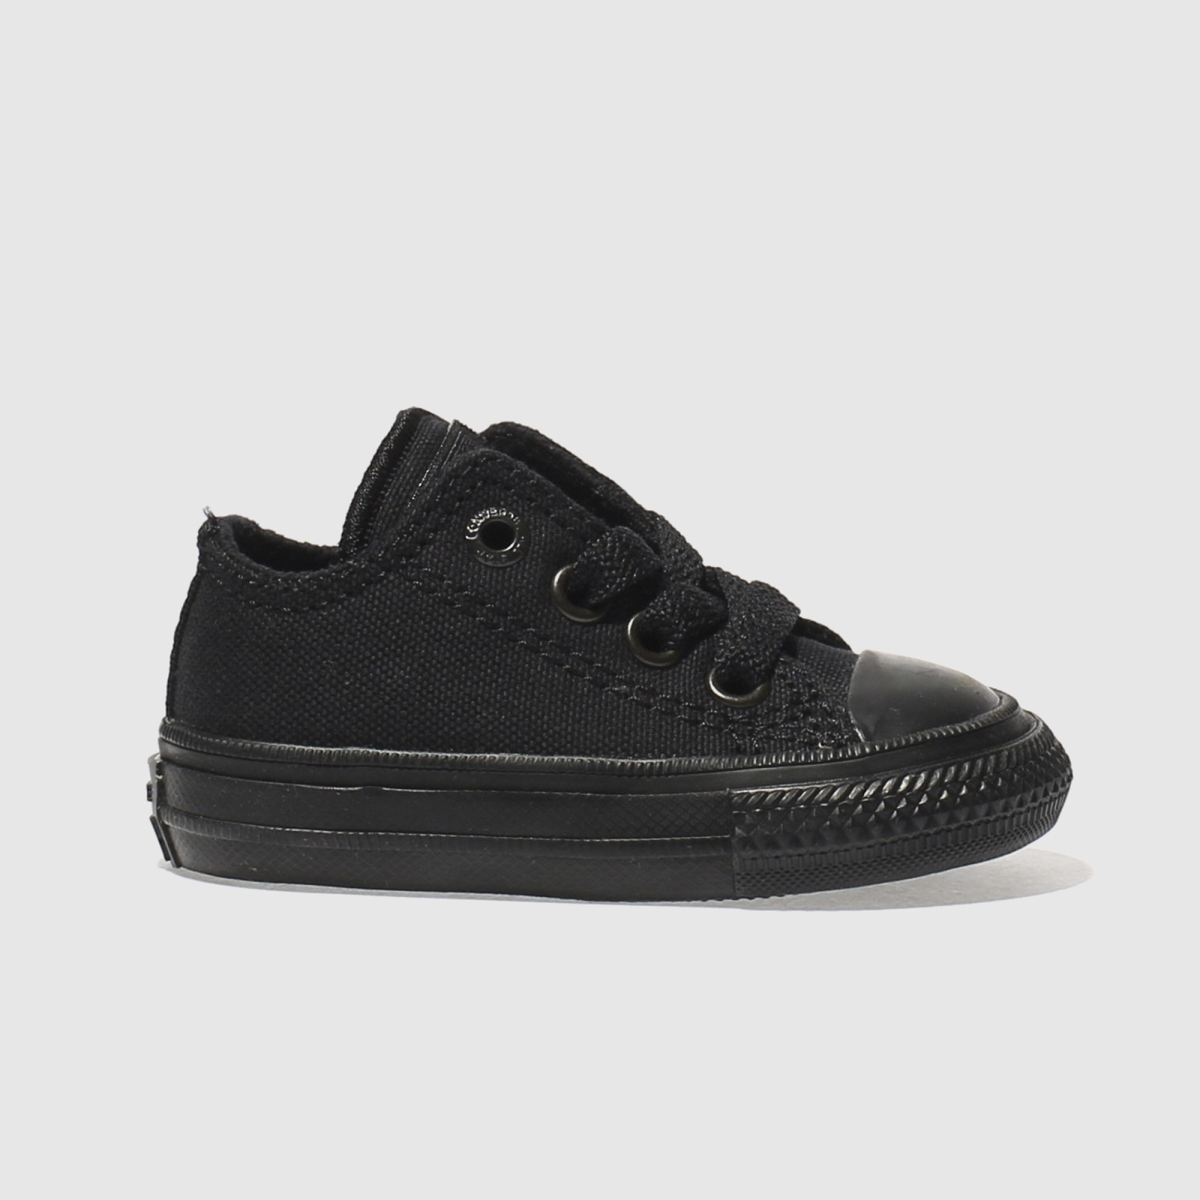 converse black chuck taylor ii ox Toddler Trainers